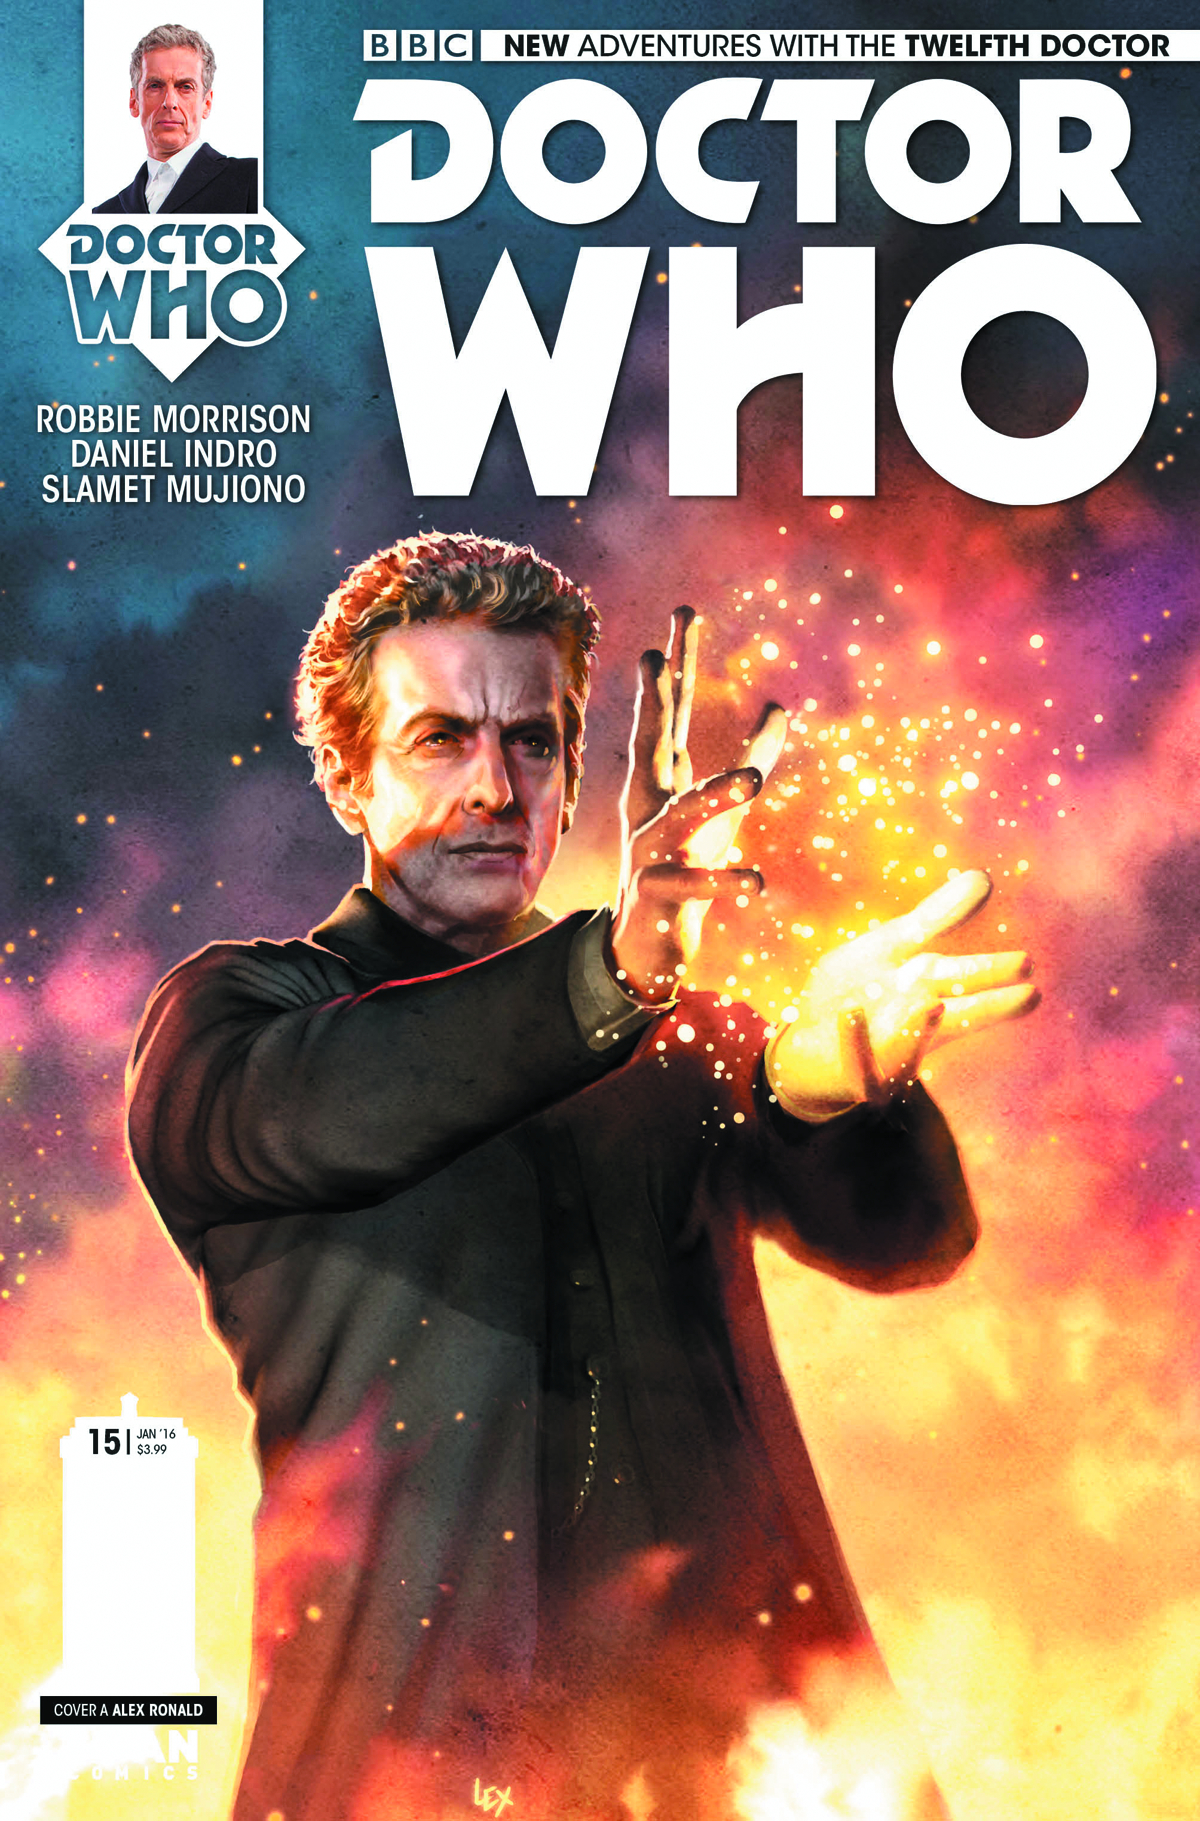 DOCTOR WHO 12TH #15 REG RONALD